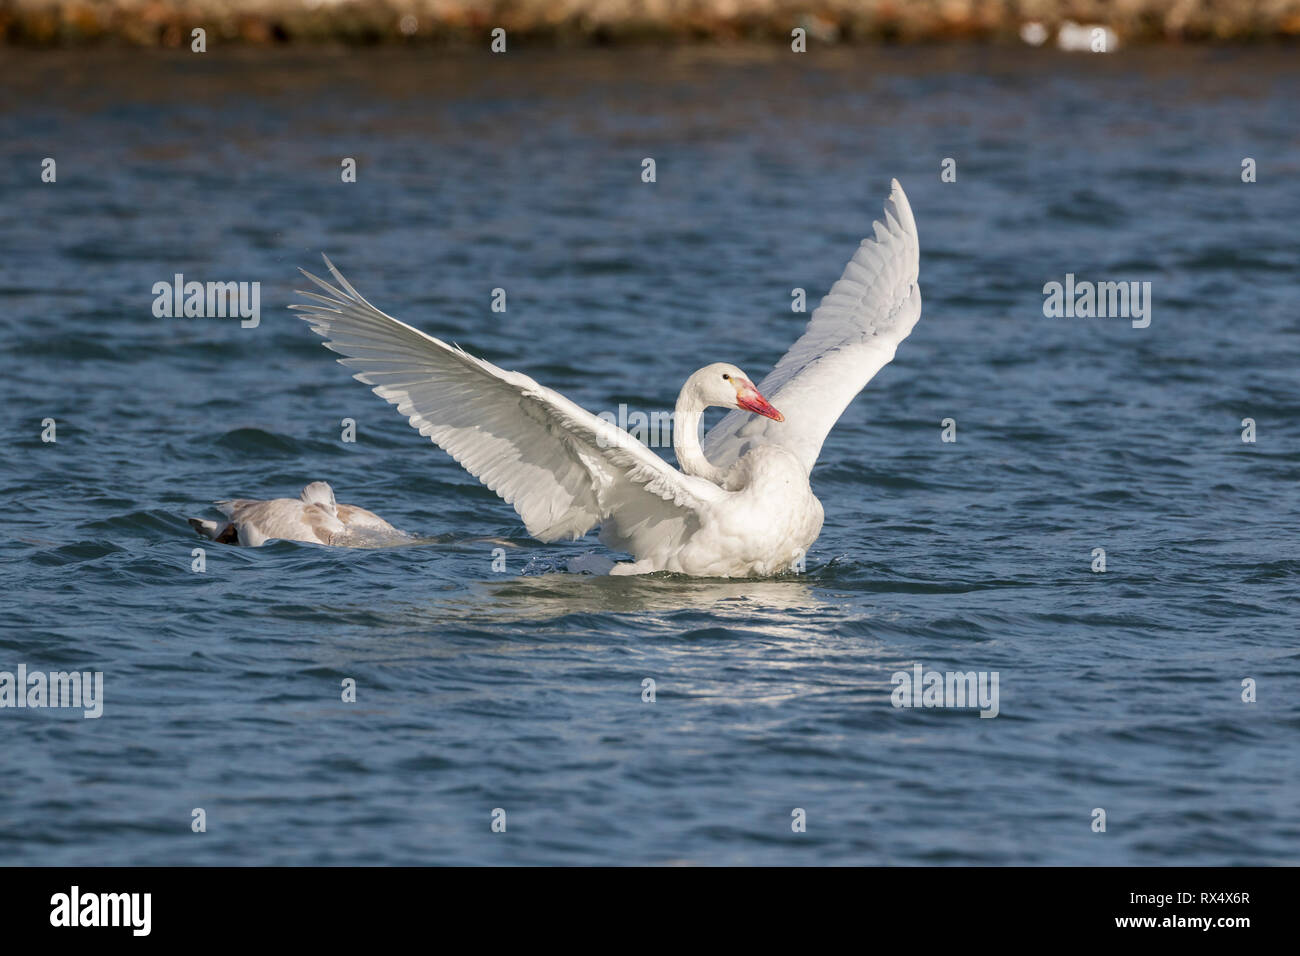 Juvenile Trumpeter Swans (Cygnus buccinator) on Lake Ontario at Bluffer's Park, Toronto, Ontario, Canada - the bright white one without black on its b - Stock Image